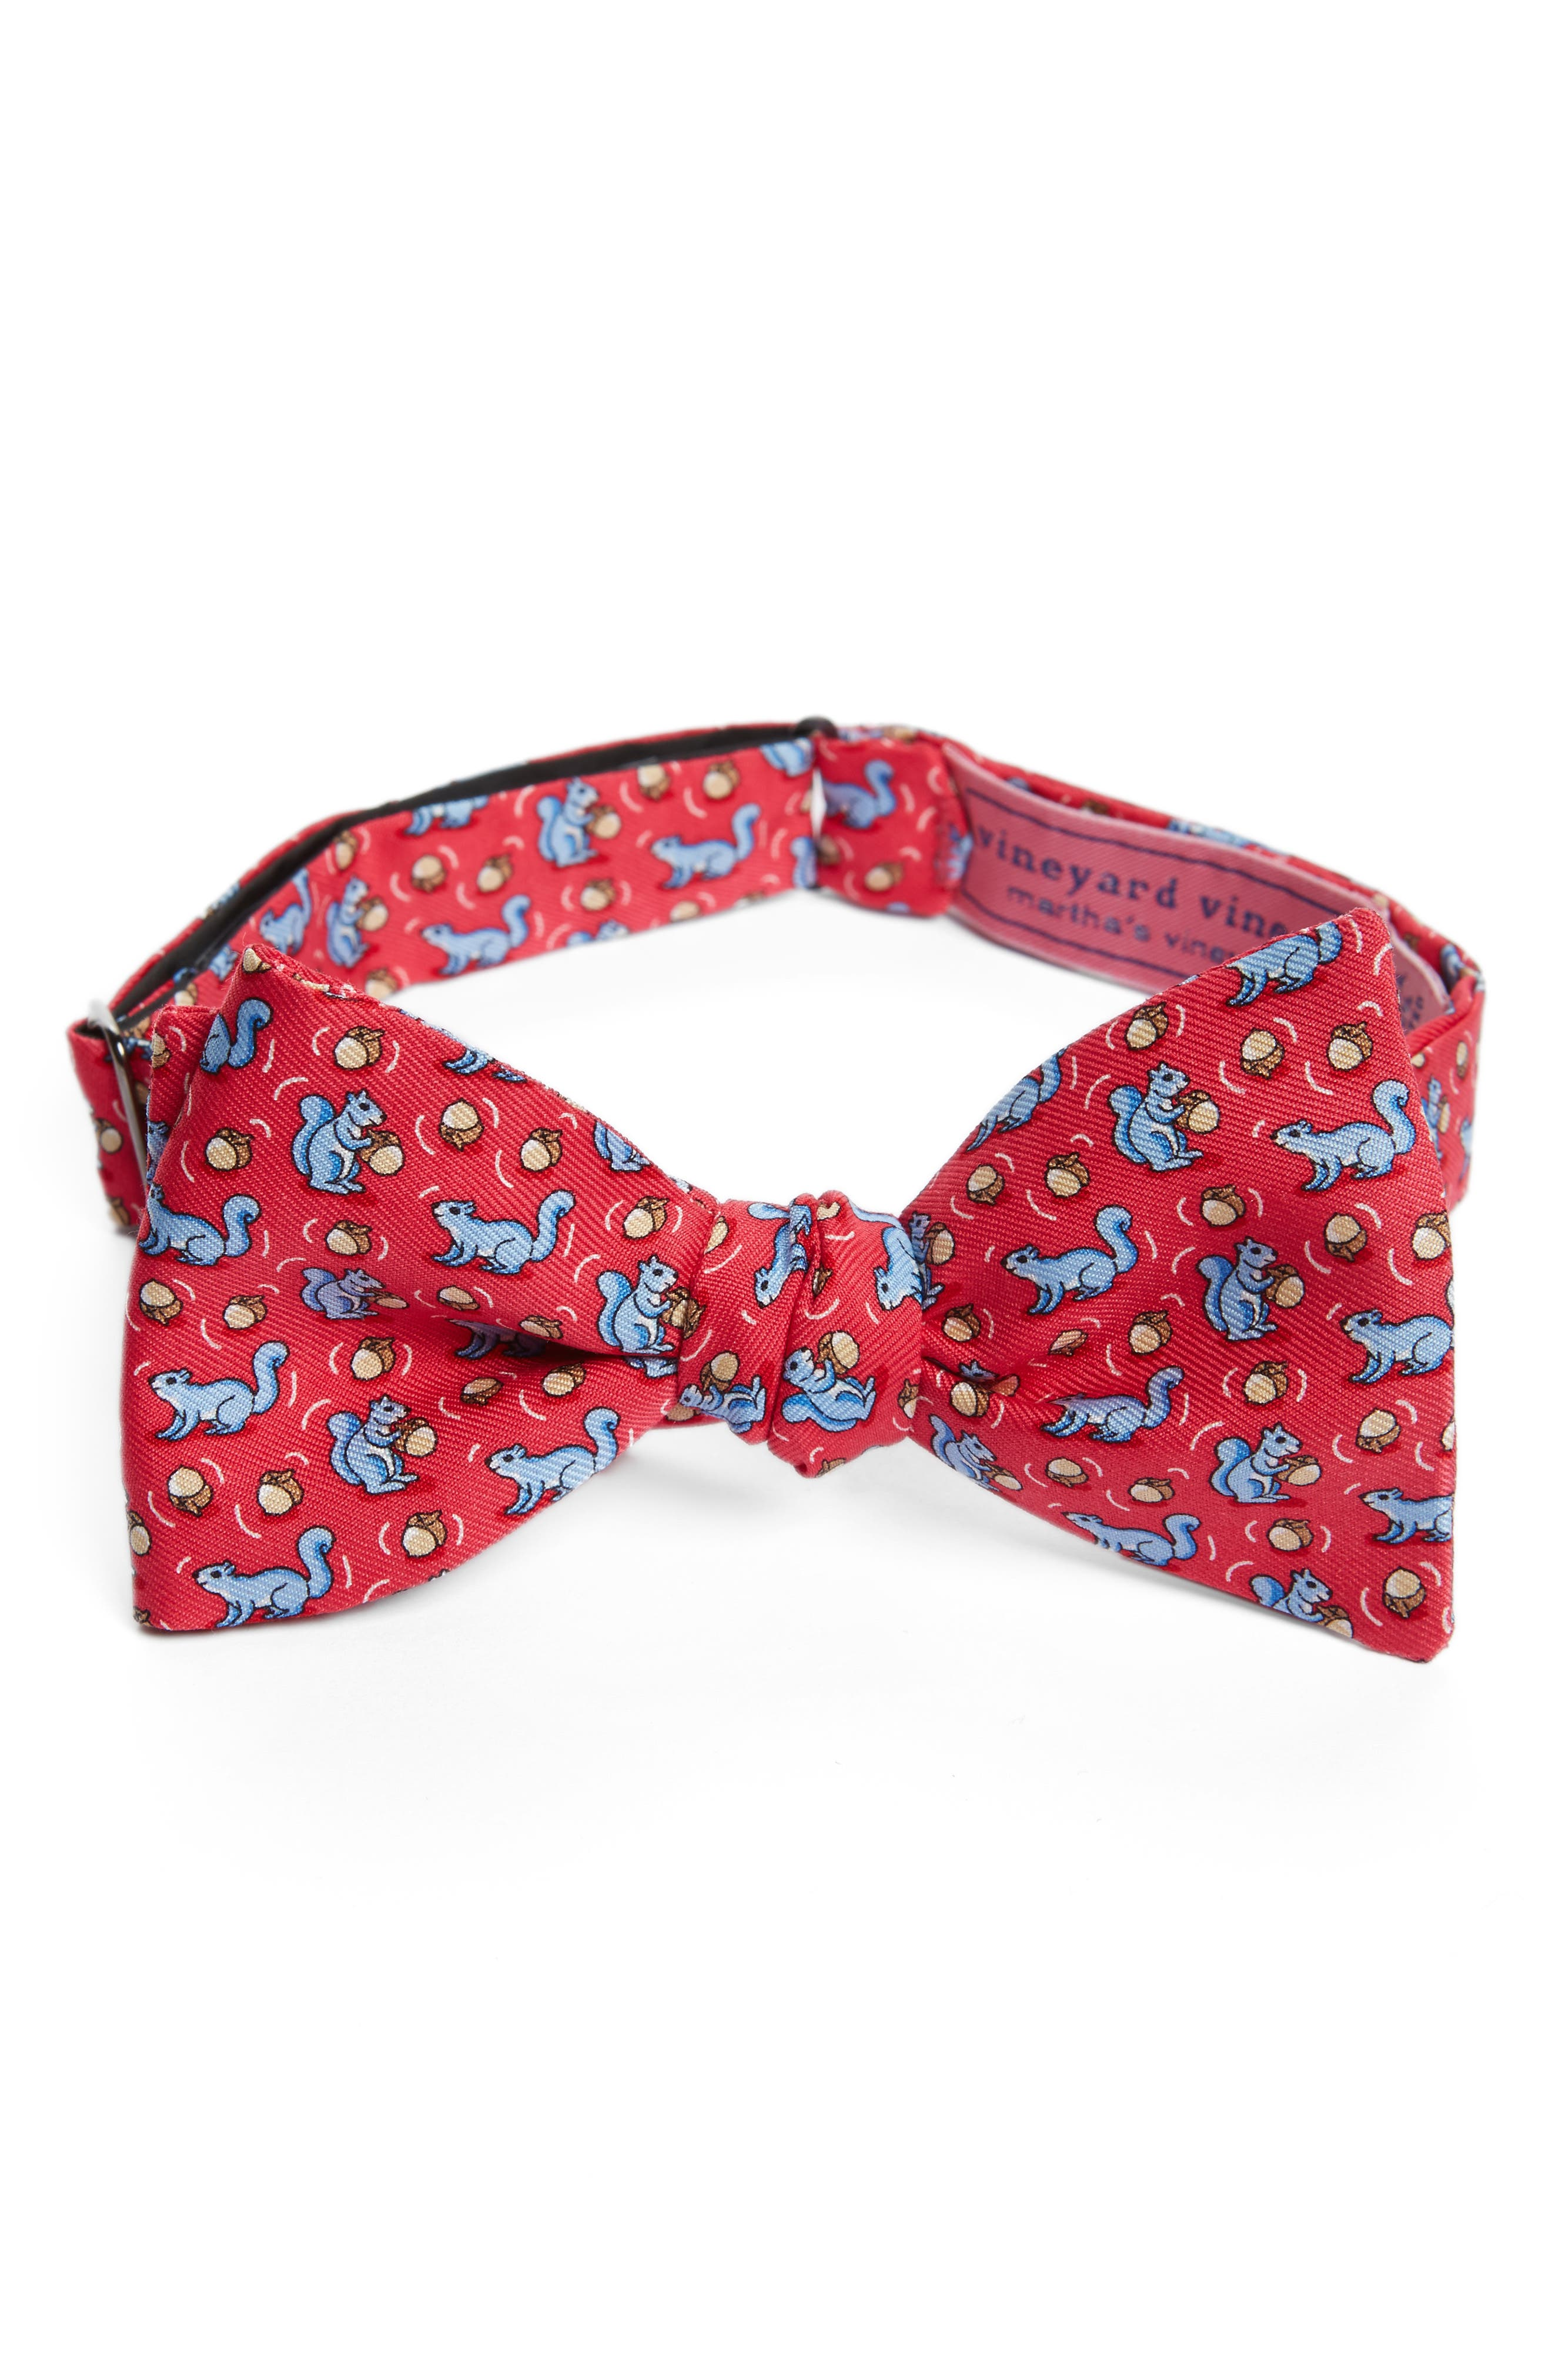 Squirrel Silk Bow Tie,                             Main thumbnail 1, color,                             Raspberry